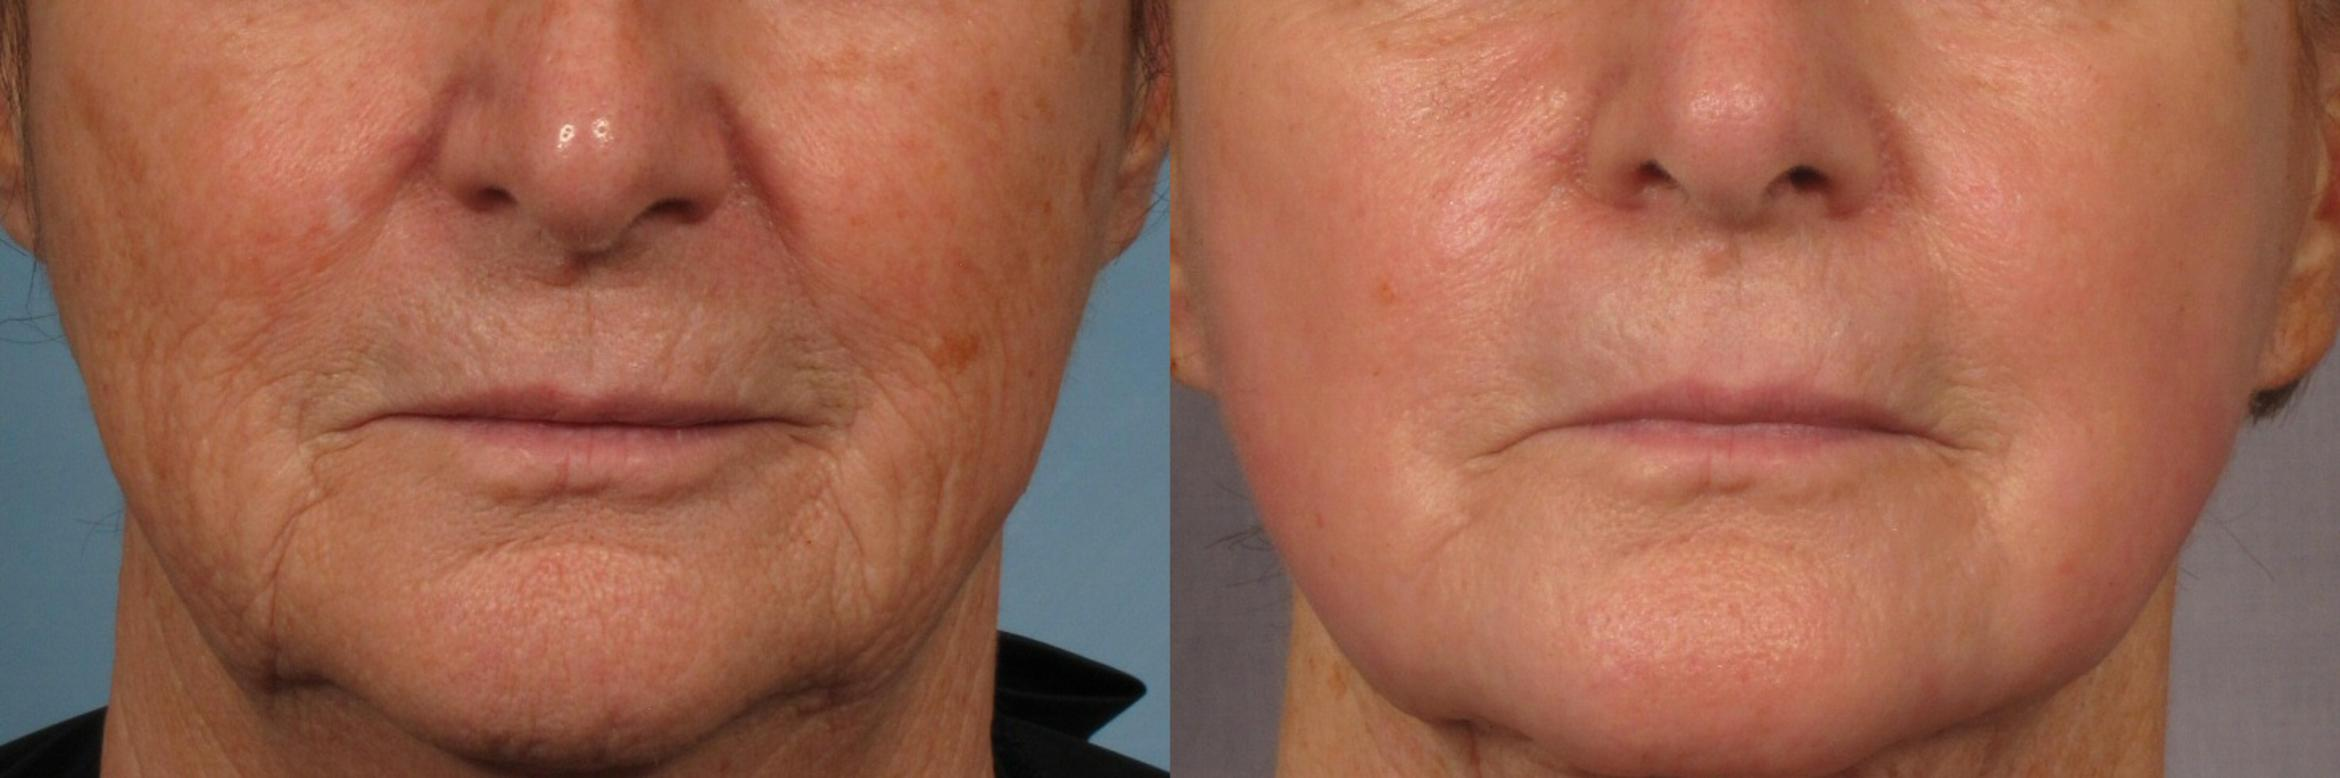 Laser Resurfacing - Total FX Case 318 Before & After View #1 | Naples, FL | Kent V. Hasen, M.D.